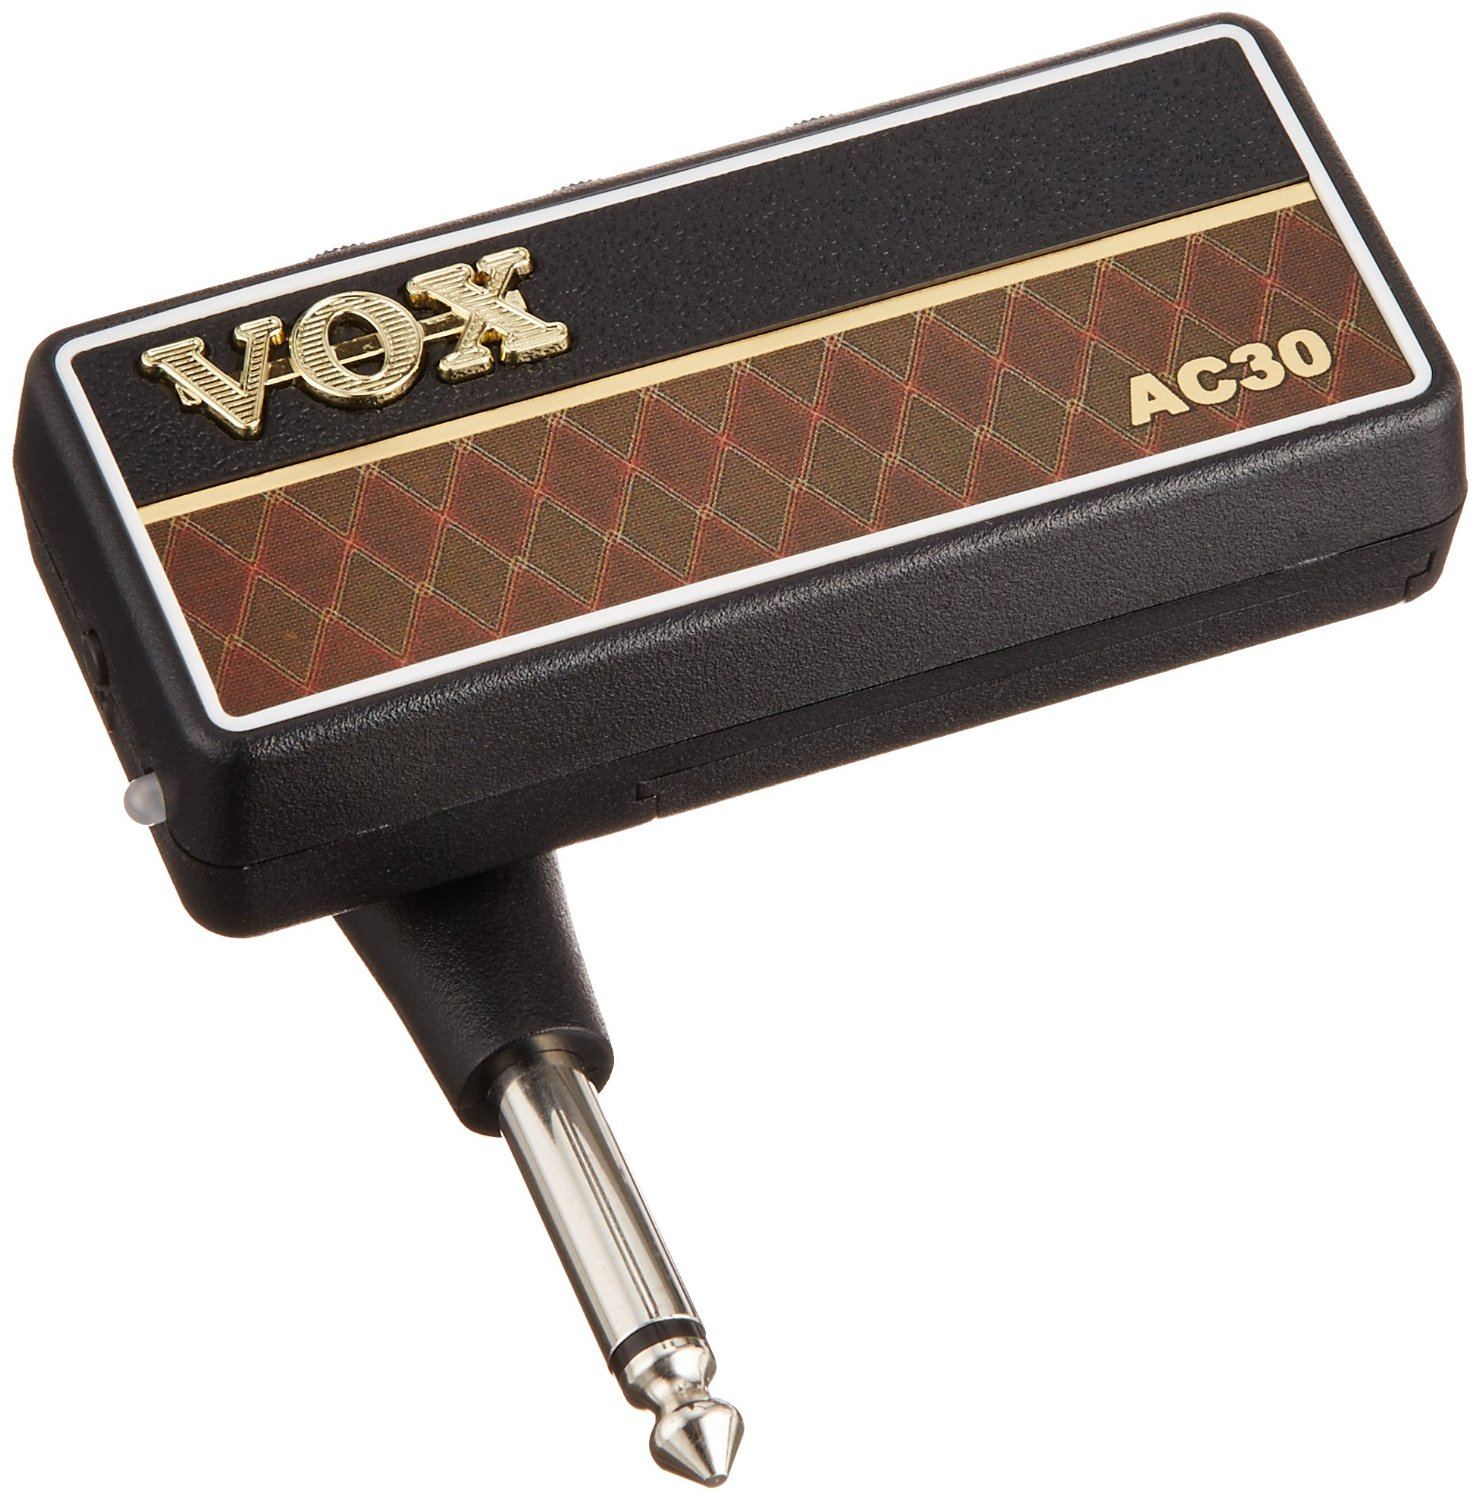 Vox AP2AC amPlug Headphone Guitar Amp - AC30 G2